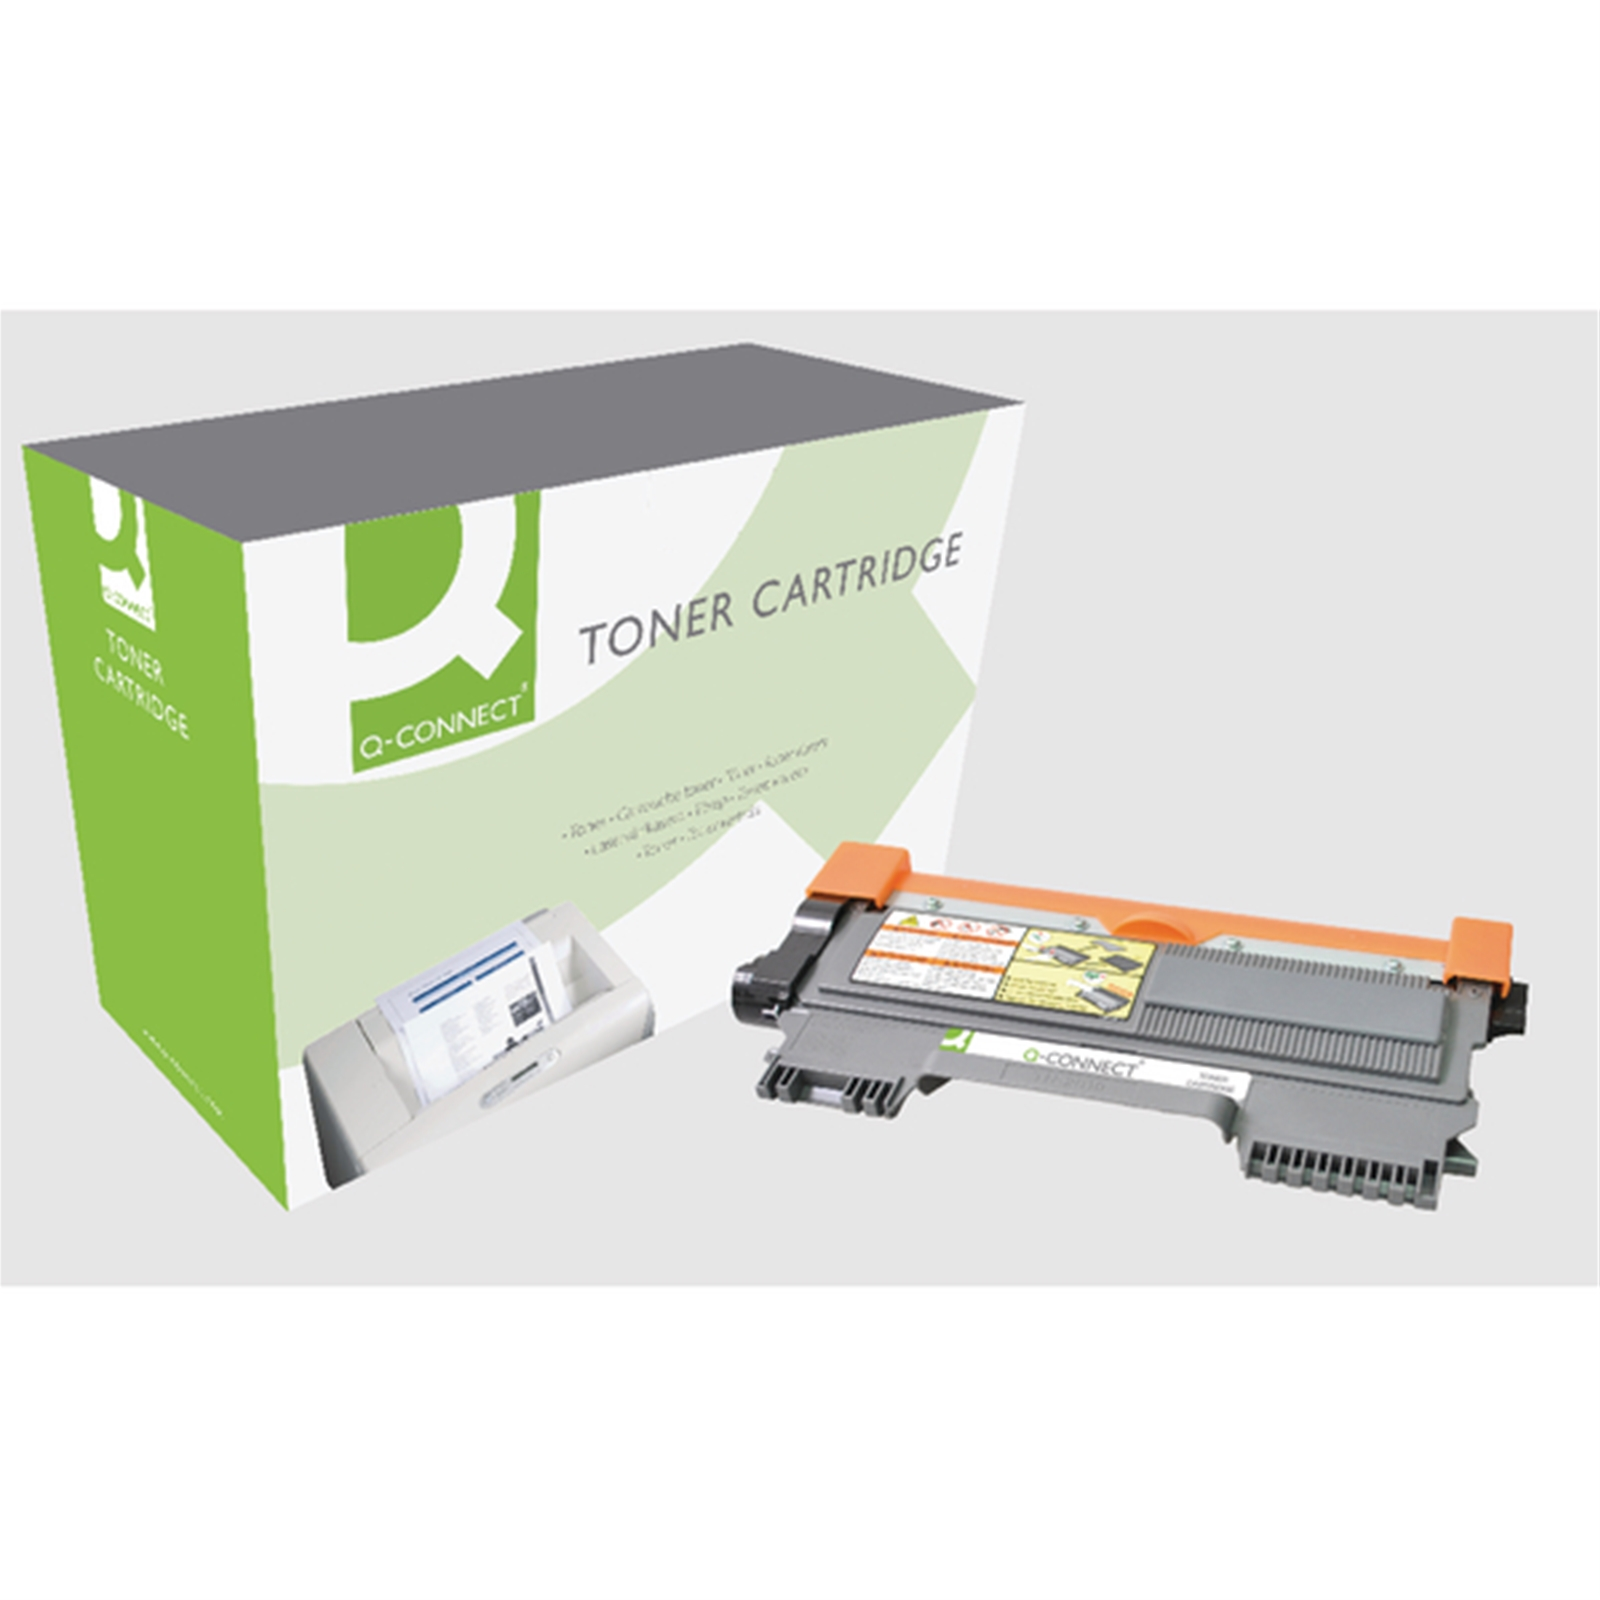 q connect brother compatible laser toners tn2010 comp Printer Printing Blank Pages CD Printing Printers